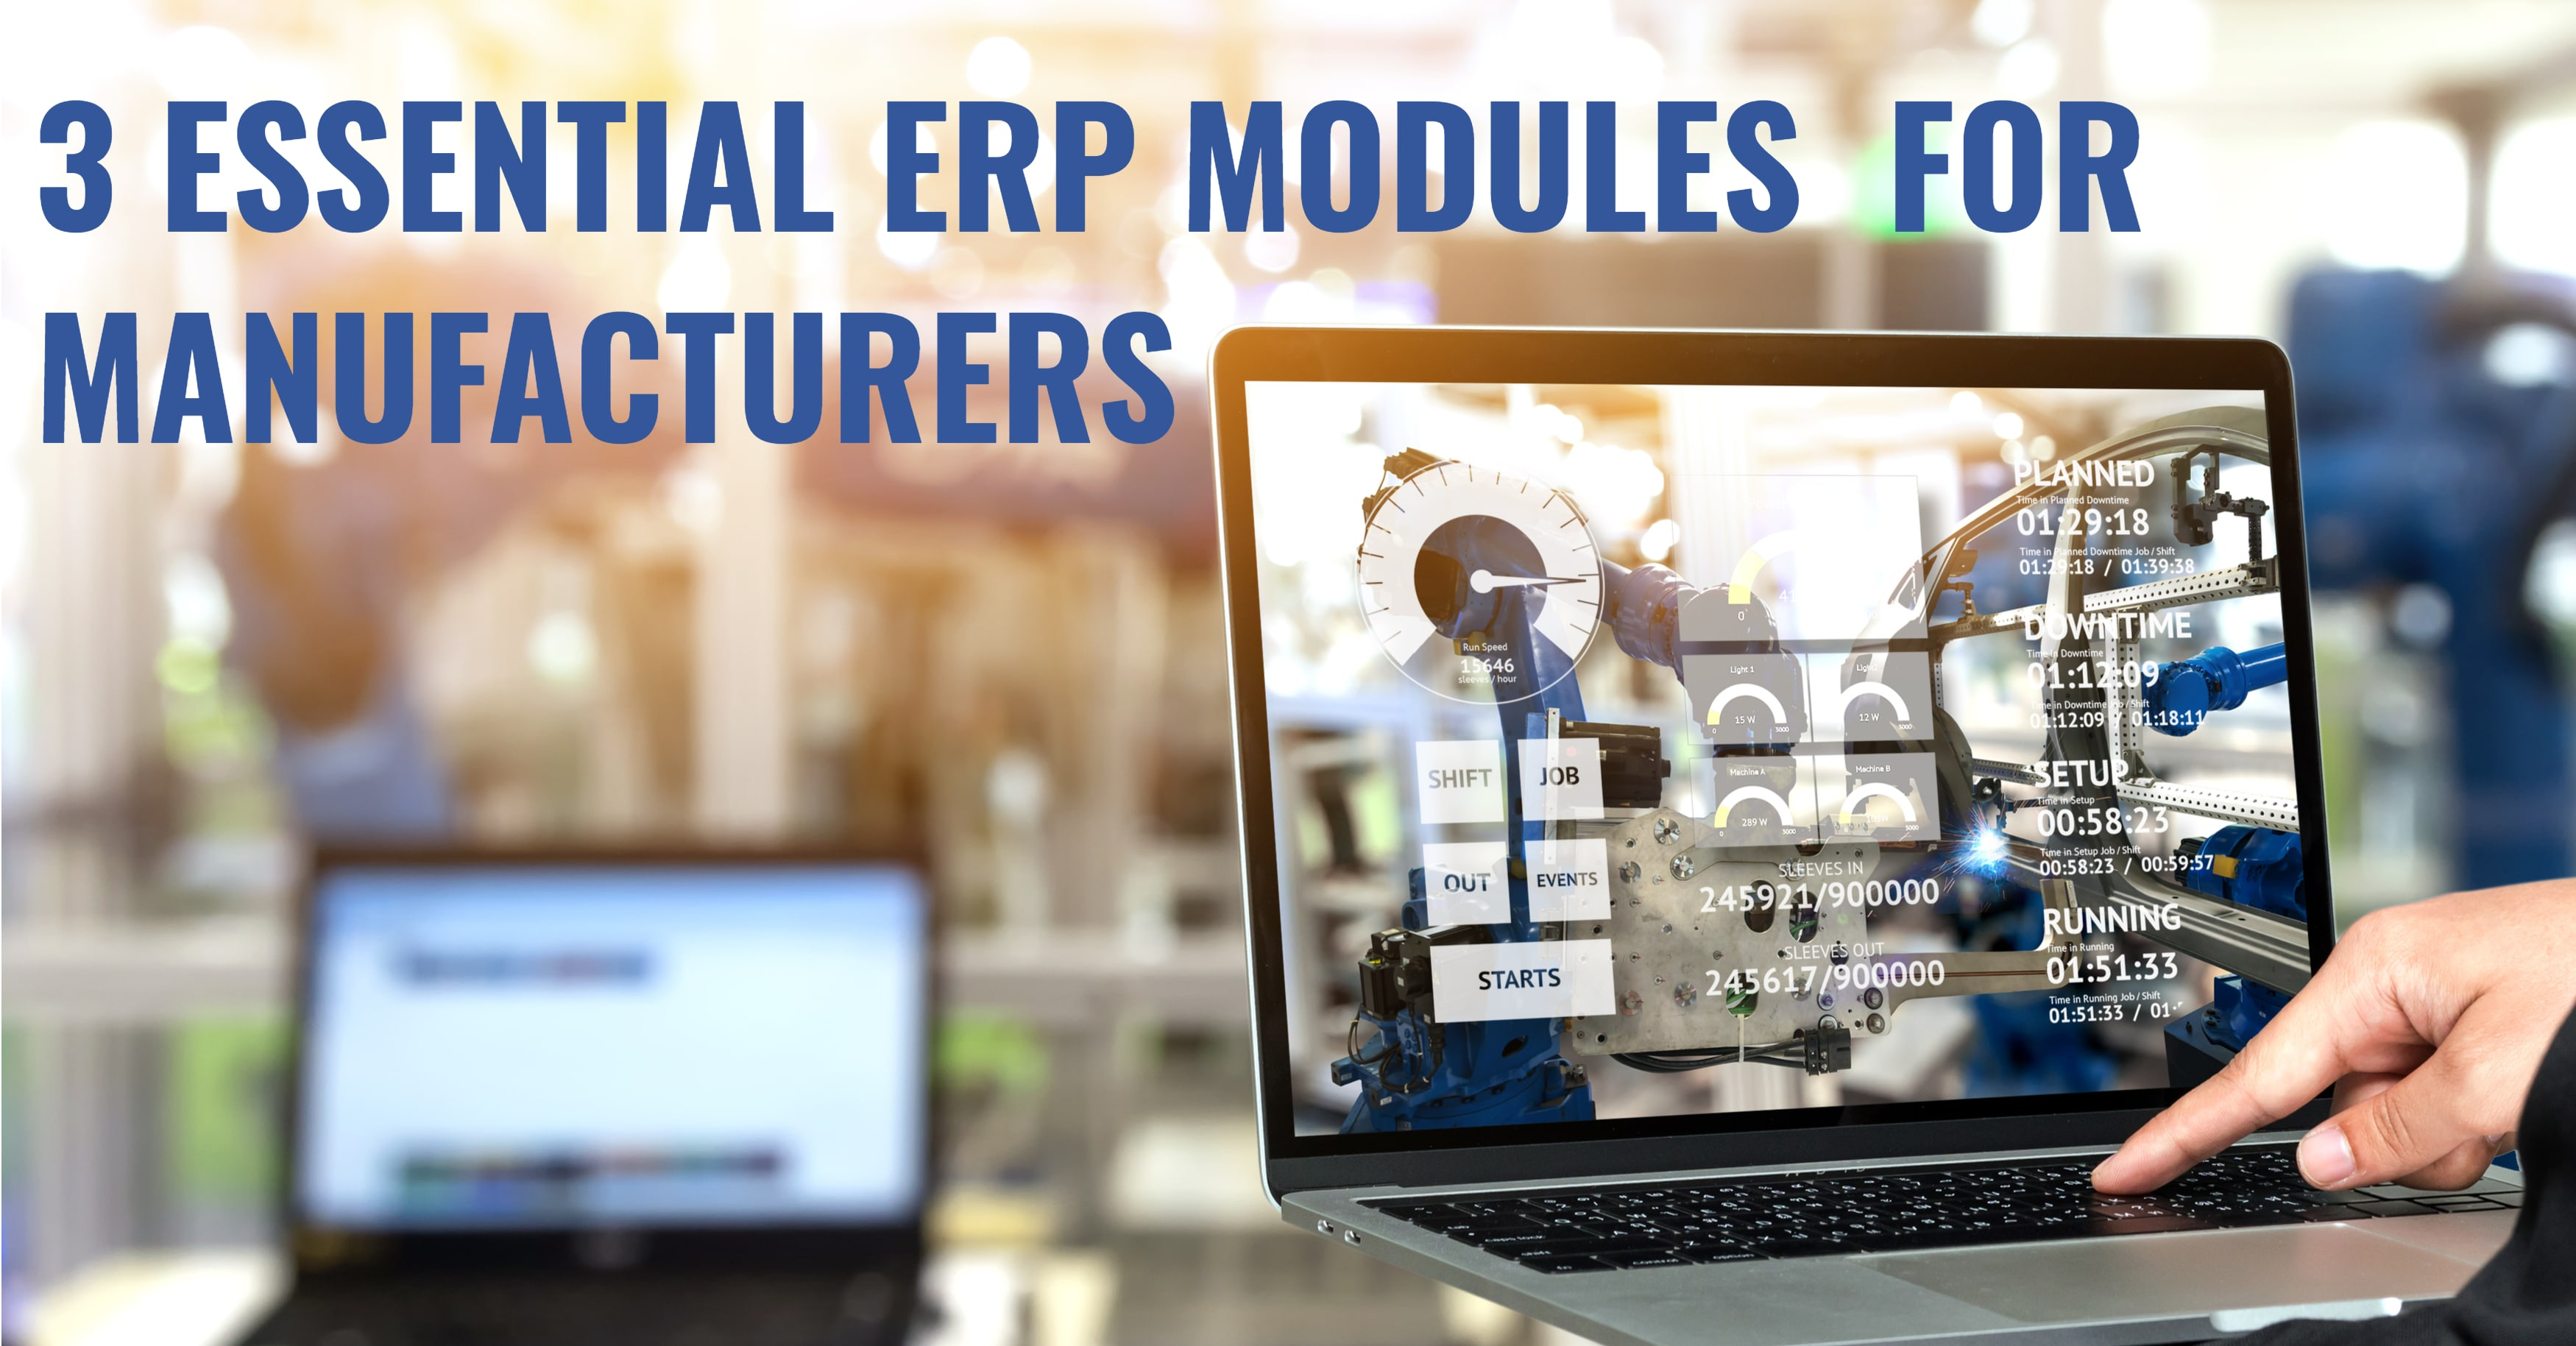 3 Essential ERP Modules for Manufacturers